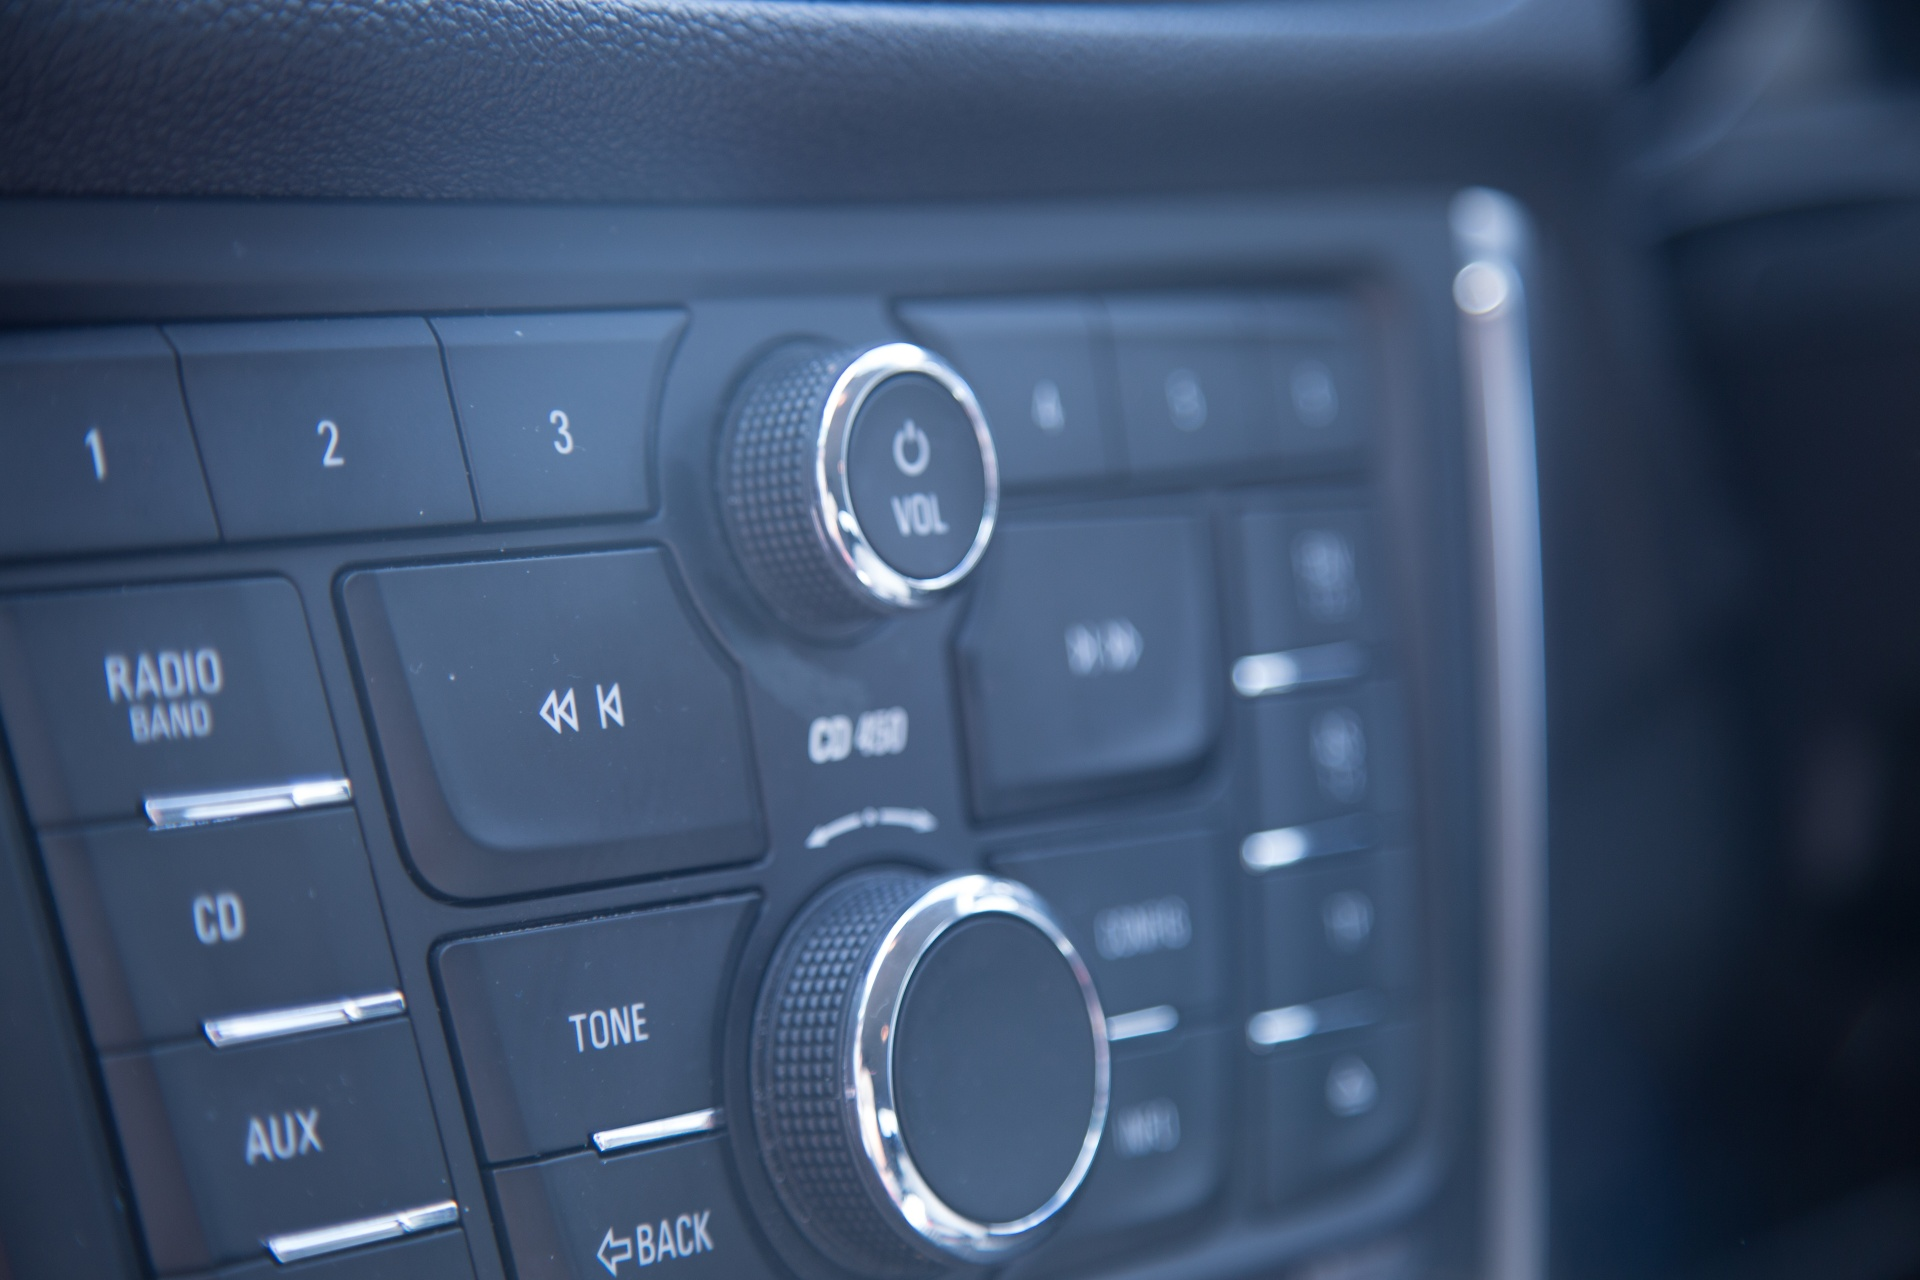 Spy listening bugs for cars: which device is best to use?